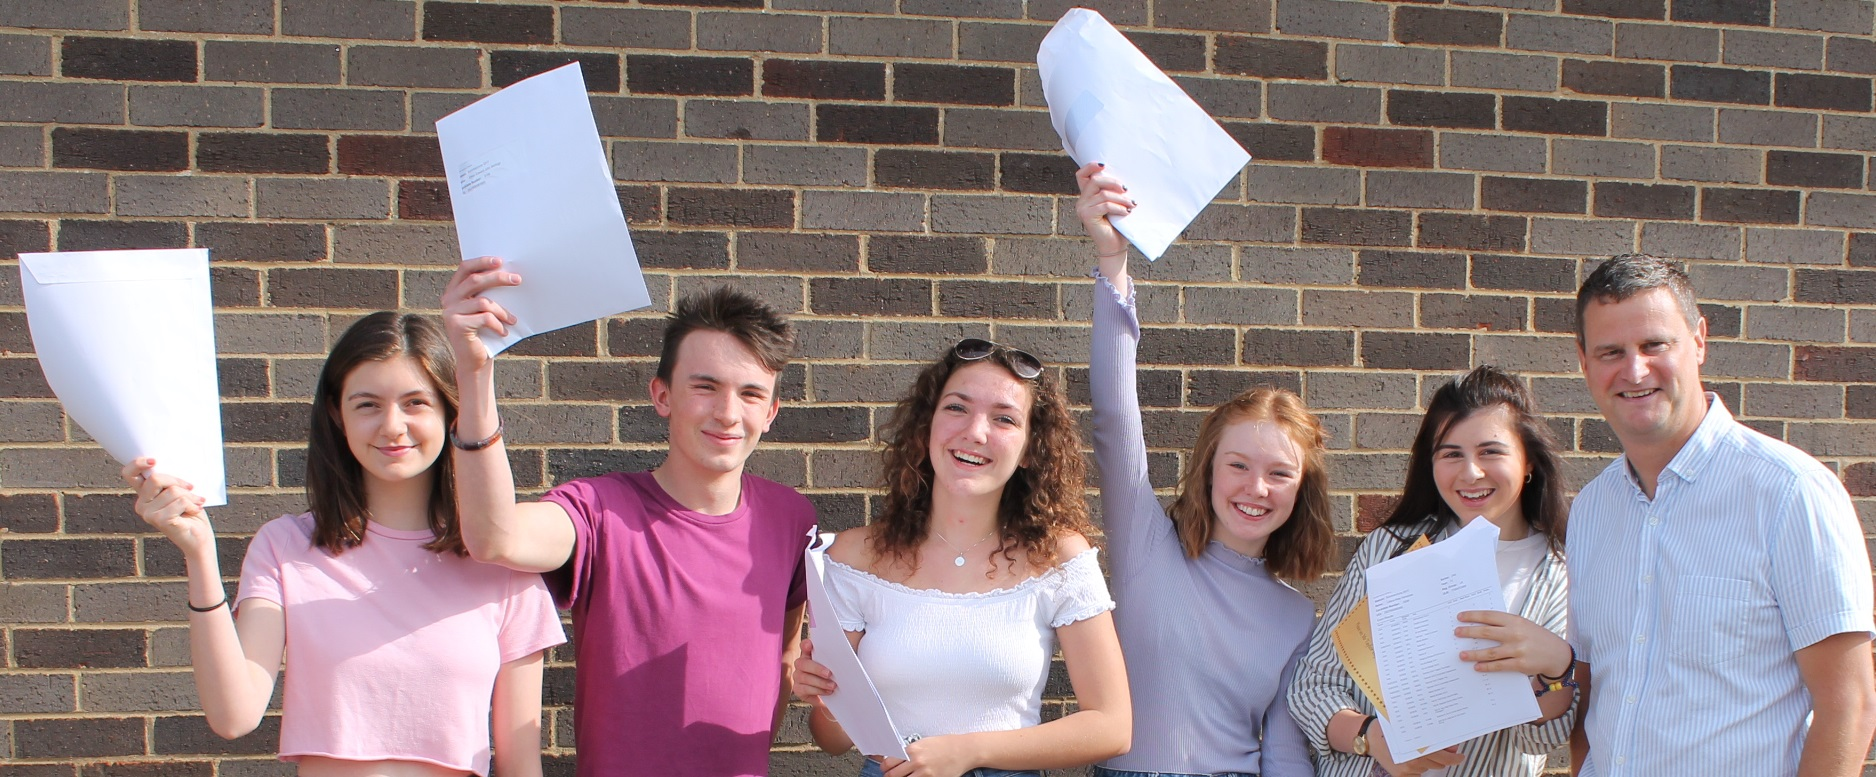 Imogen Tompkins, Ethan McHugo, Bethany Stirland, Lucy Wood and Lilian Veneziale celebrate their results with Mr. Taylor.